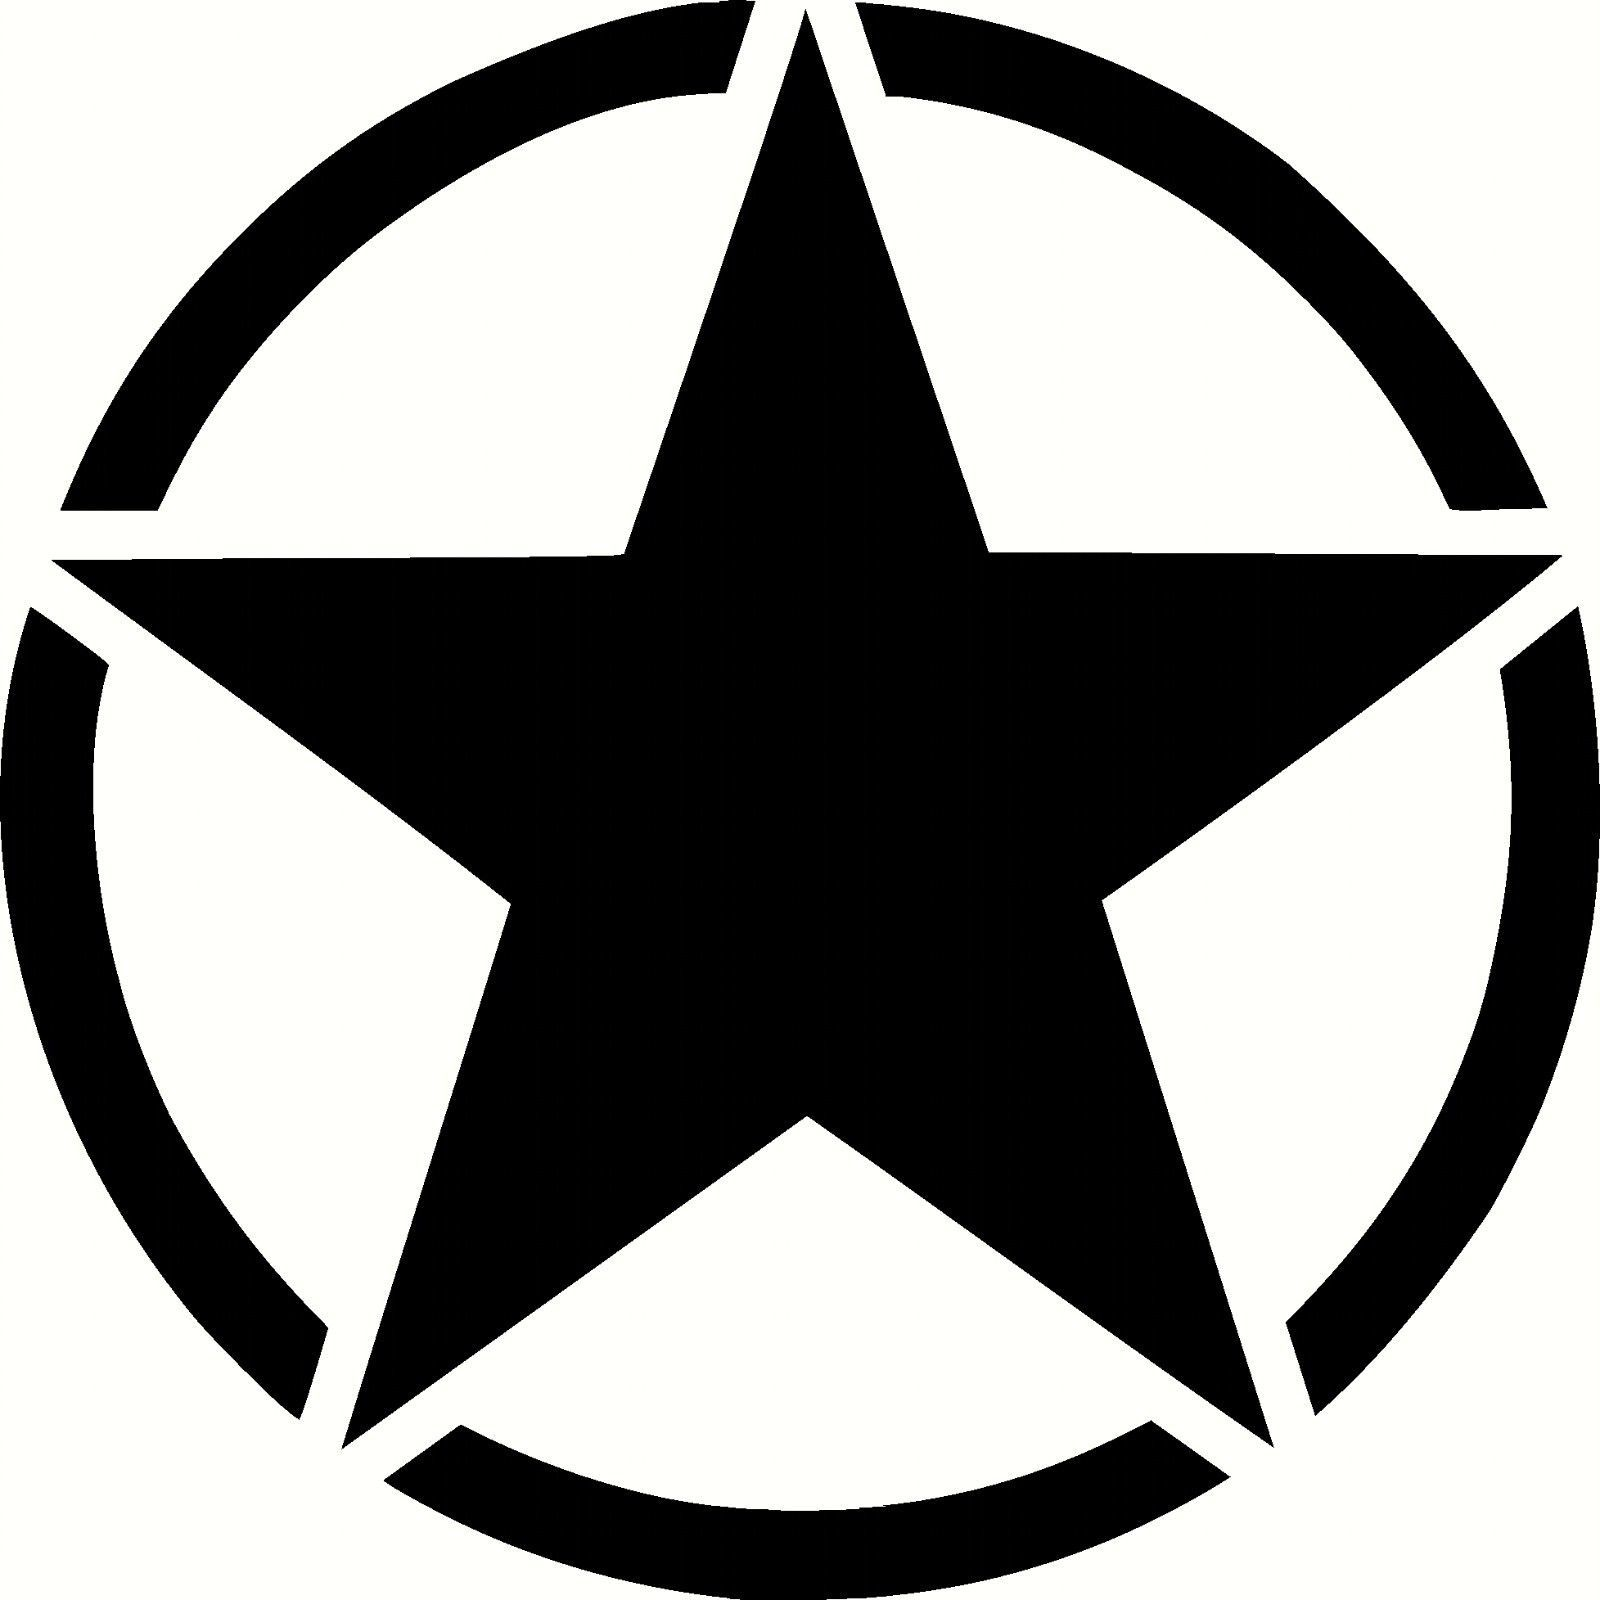 Army Star Vinyl Sticker Decal Military Choose Size /& Color